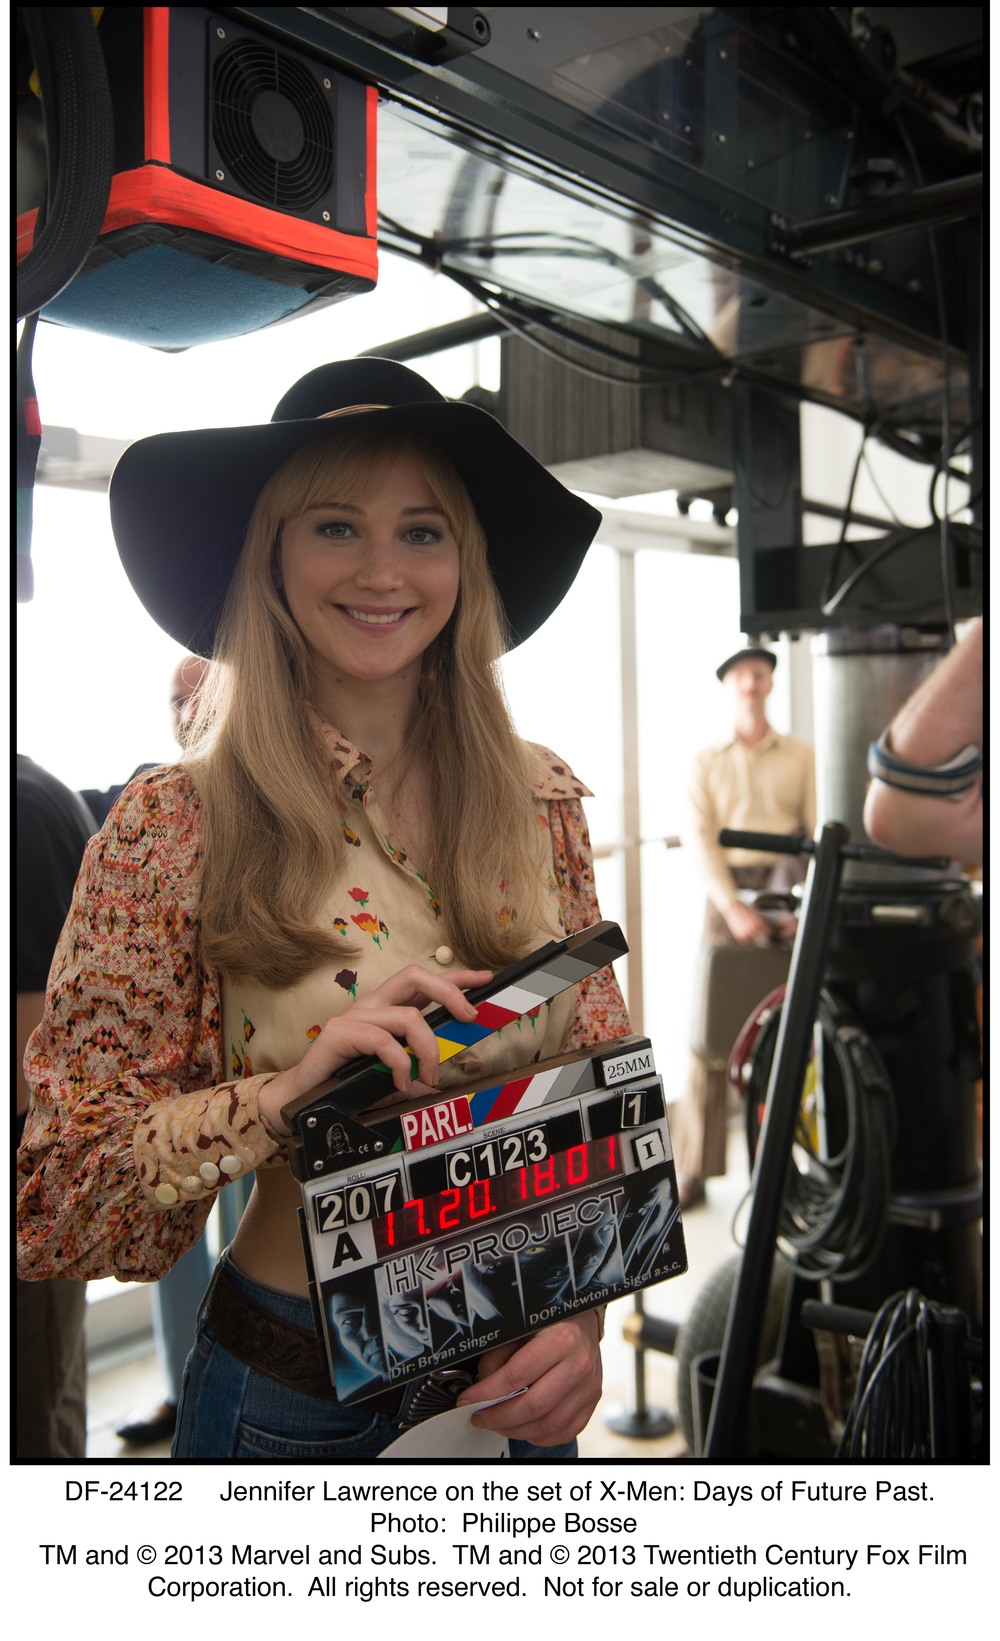 DF-24122   Jennifer Lawrence on the set of X-Men: Days of Future Past.